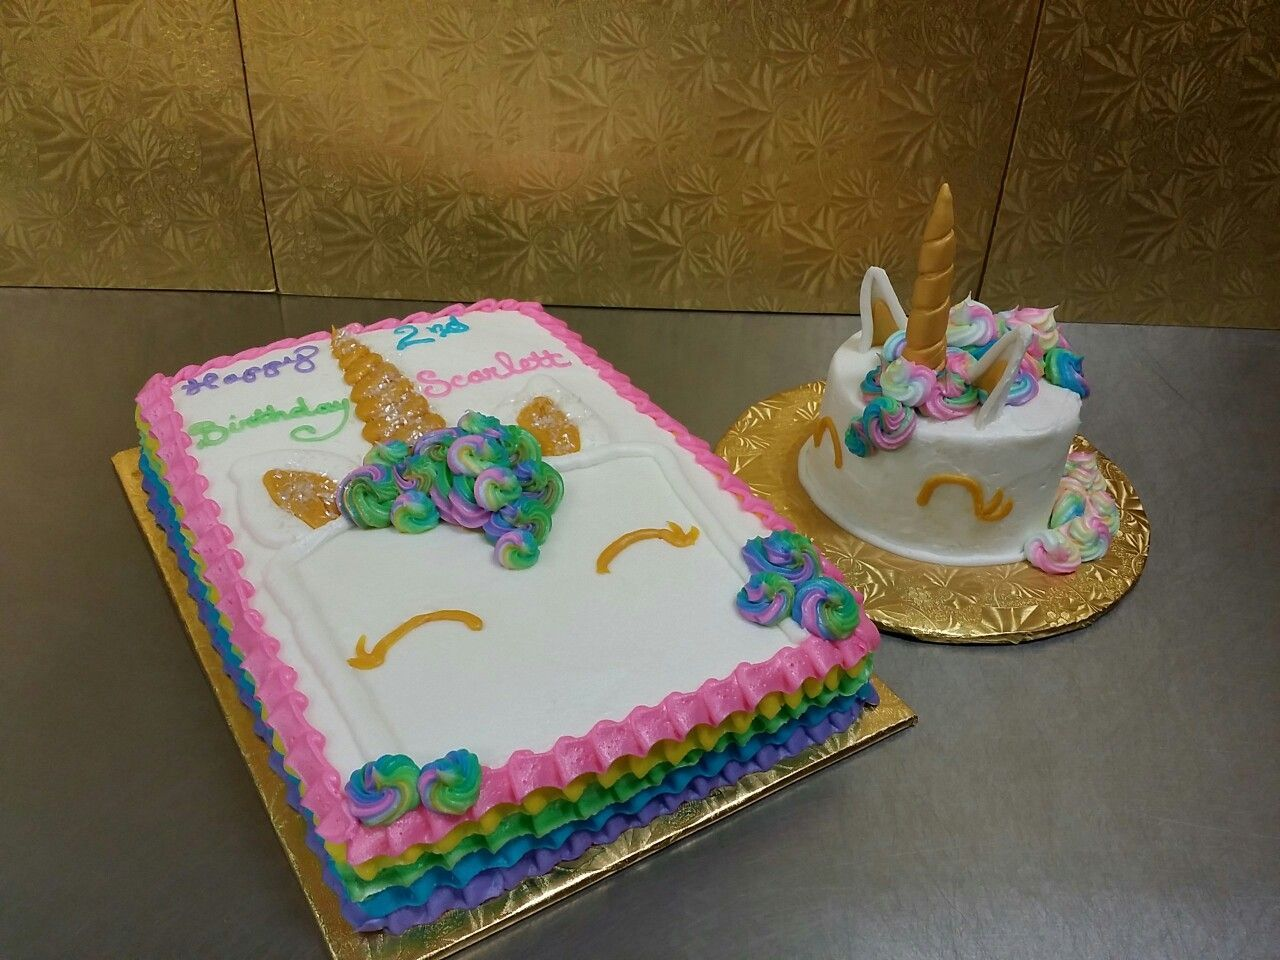 Swell Image Result For Winn Dixie Unicorn Cake With Images Cake Birthday Cards Printable Trancafe Filternl